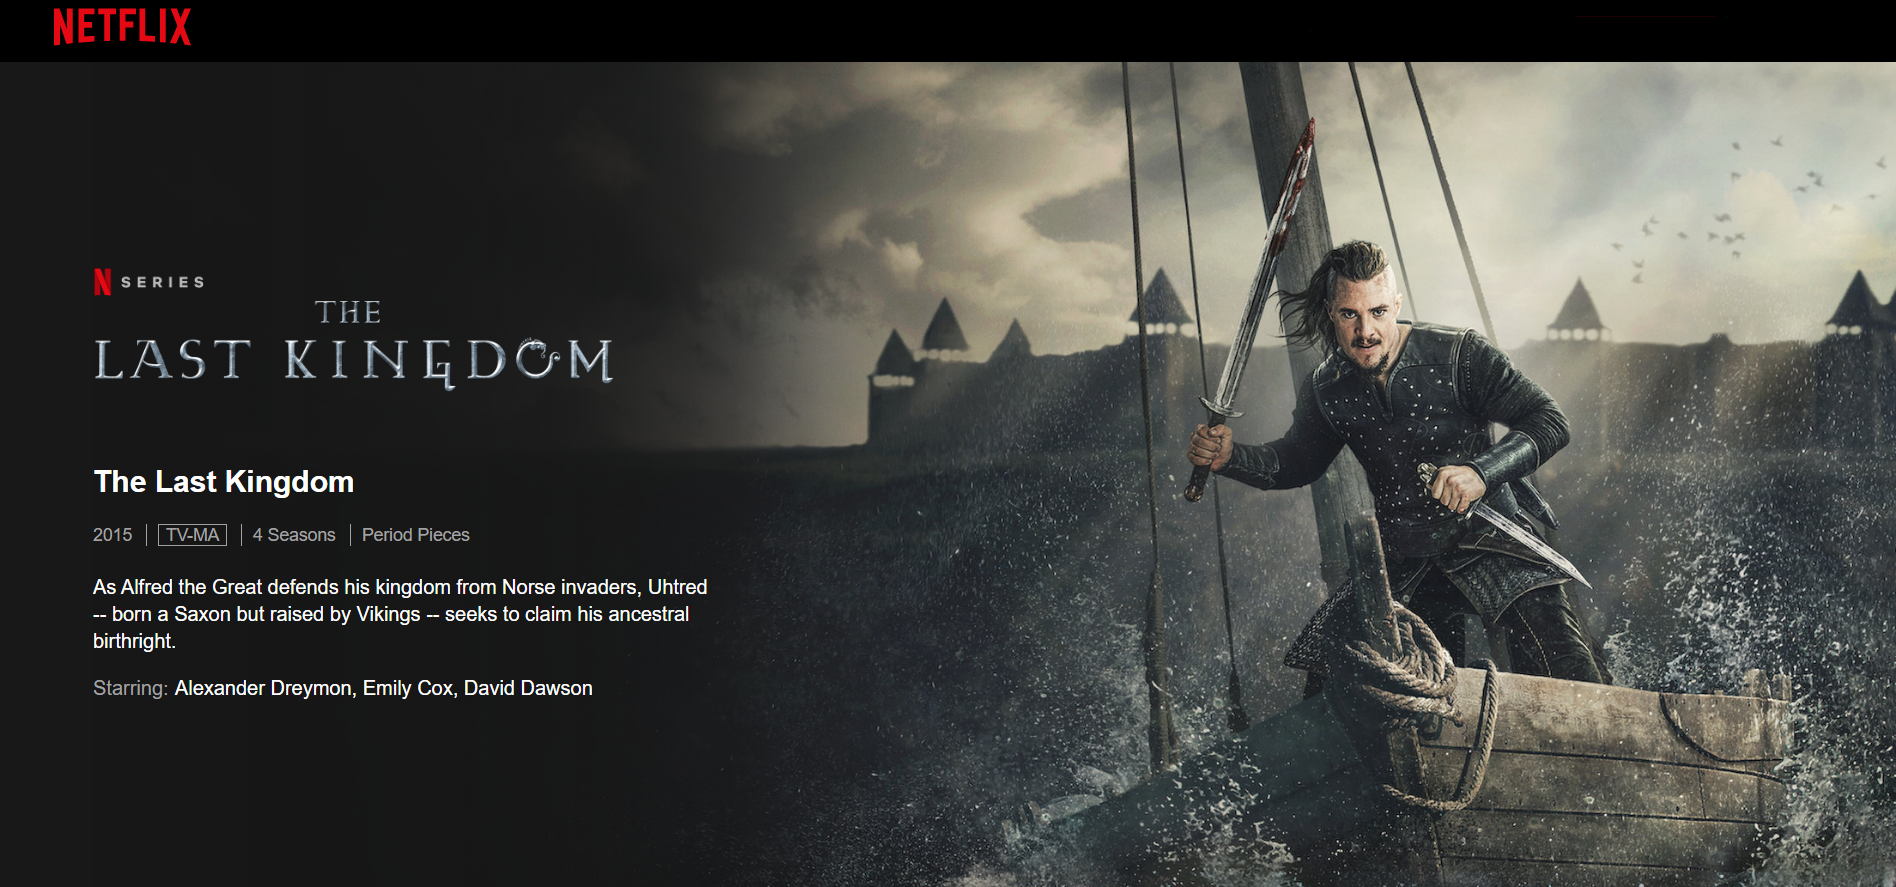 Netflix The Last Kingdom